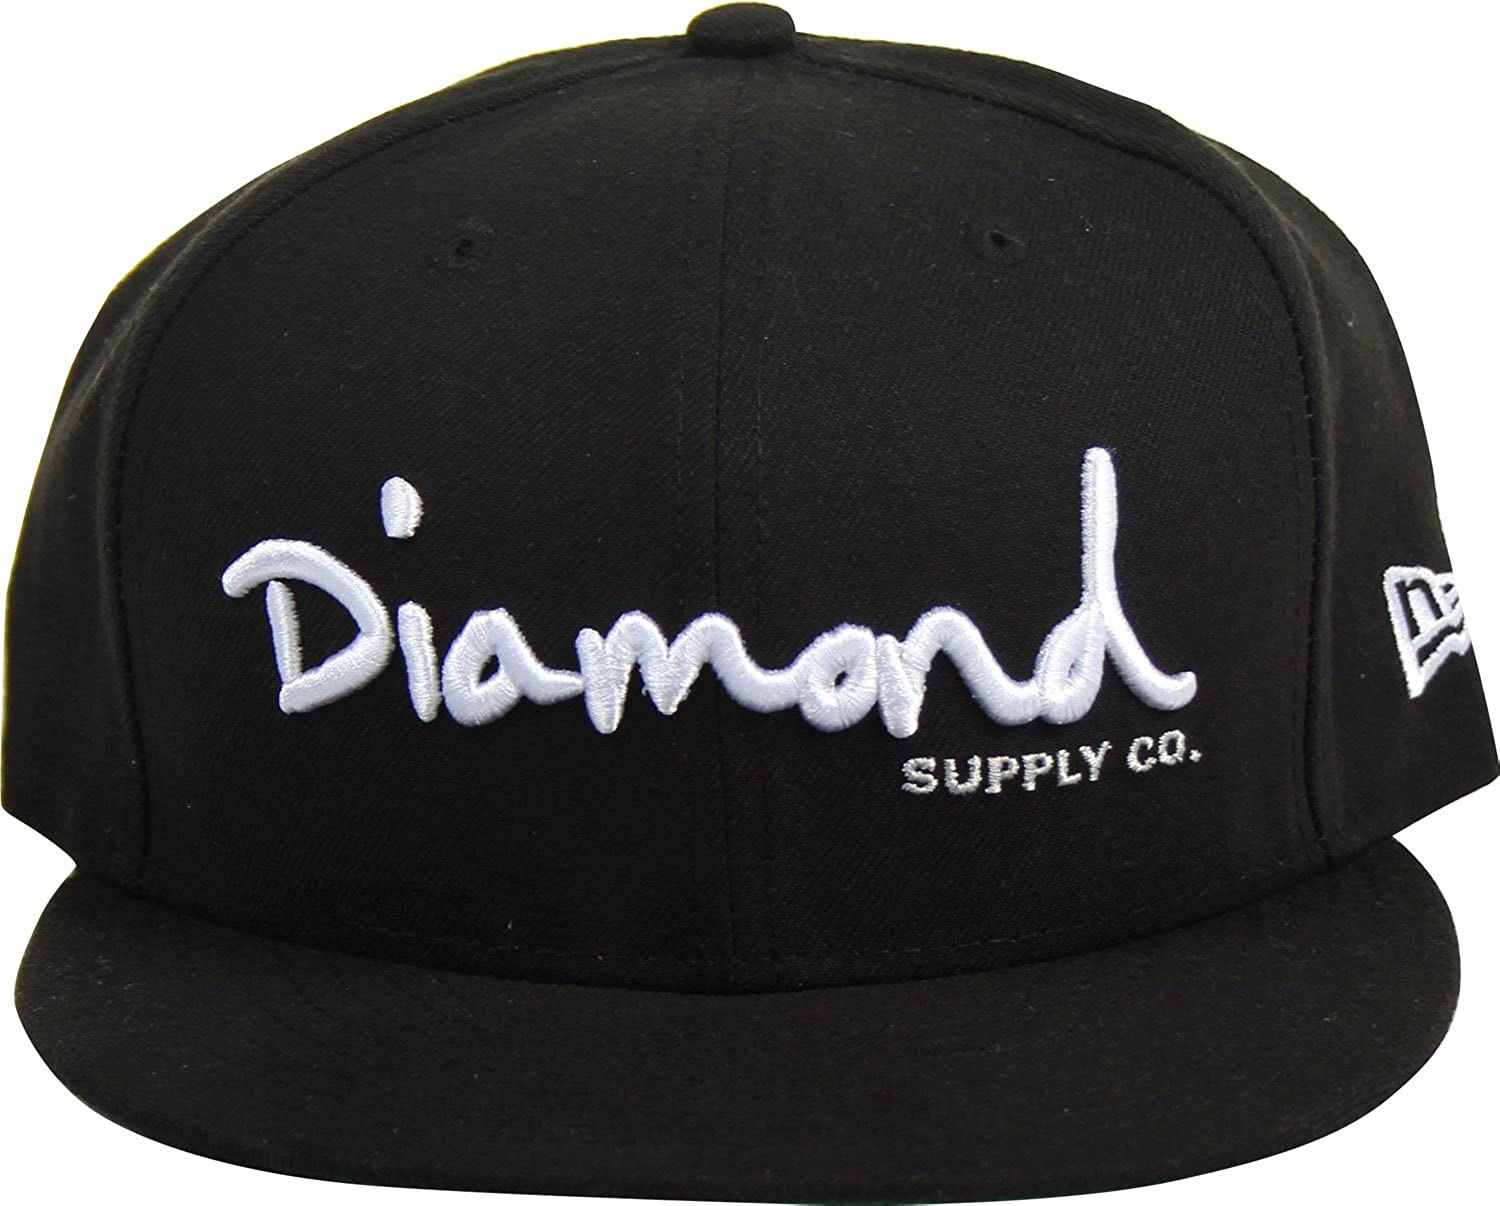 44f73cff667 Amazon.com  Diamond Supply Co. - OG Script Fitted Hat